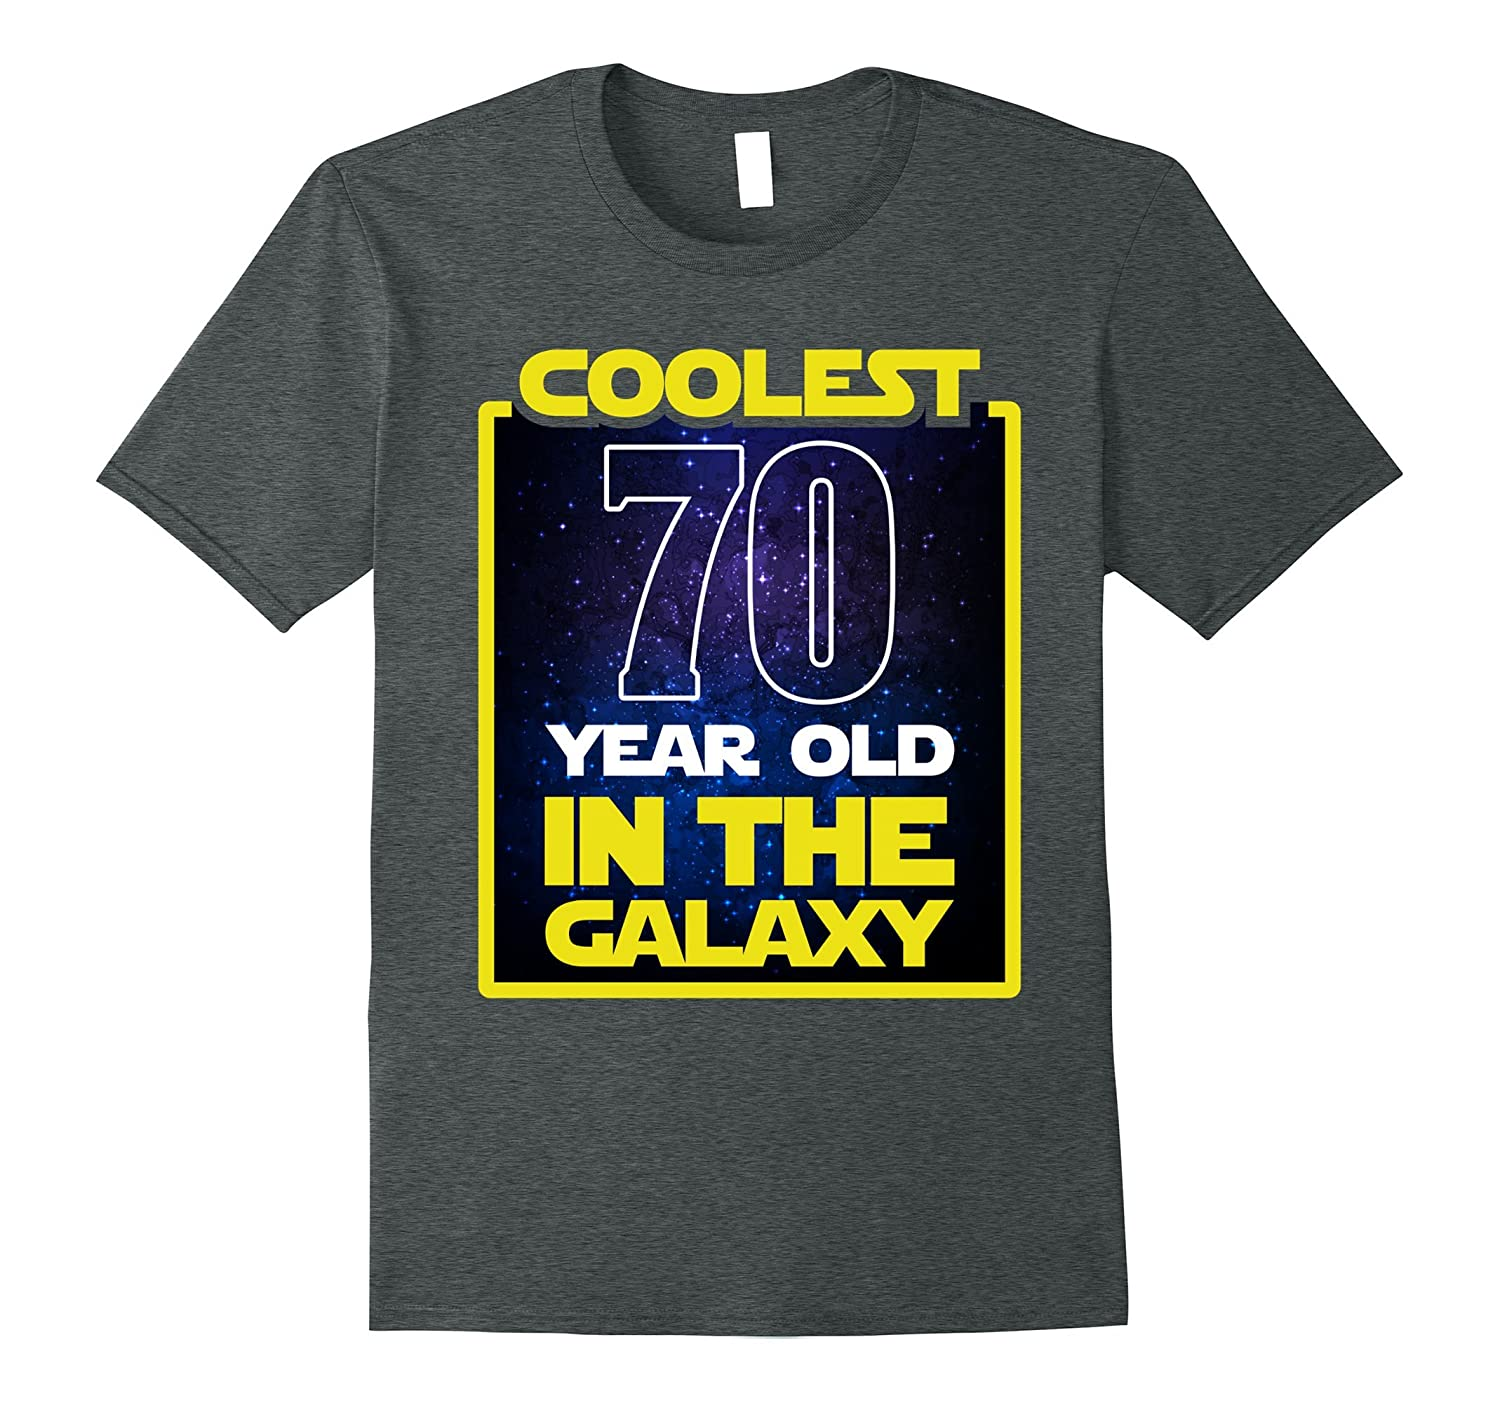 edee9e0e10 Coolest 70 years old in the galaxy Funny 70th birthday Shirt-CD ...